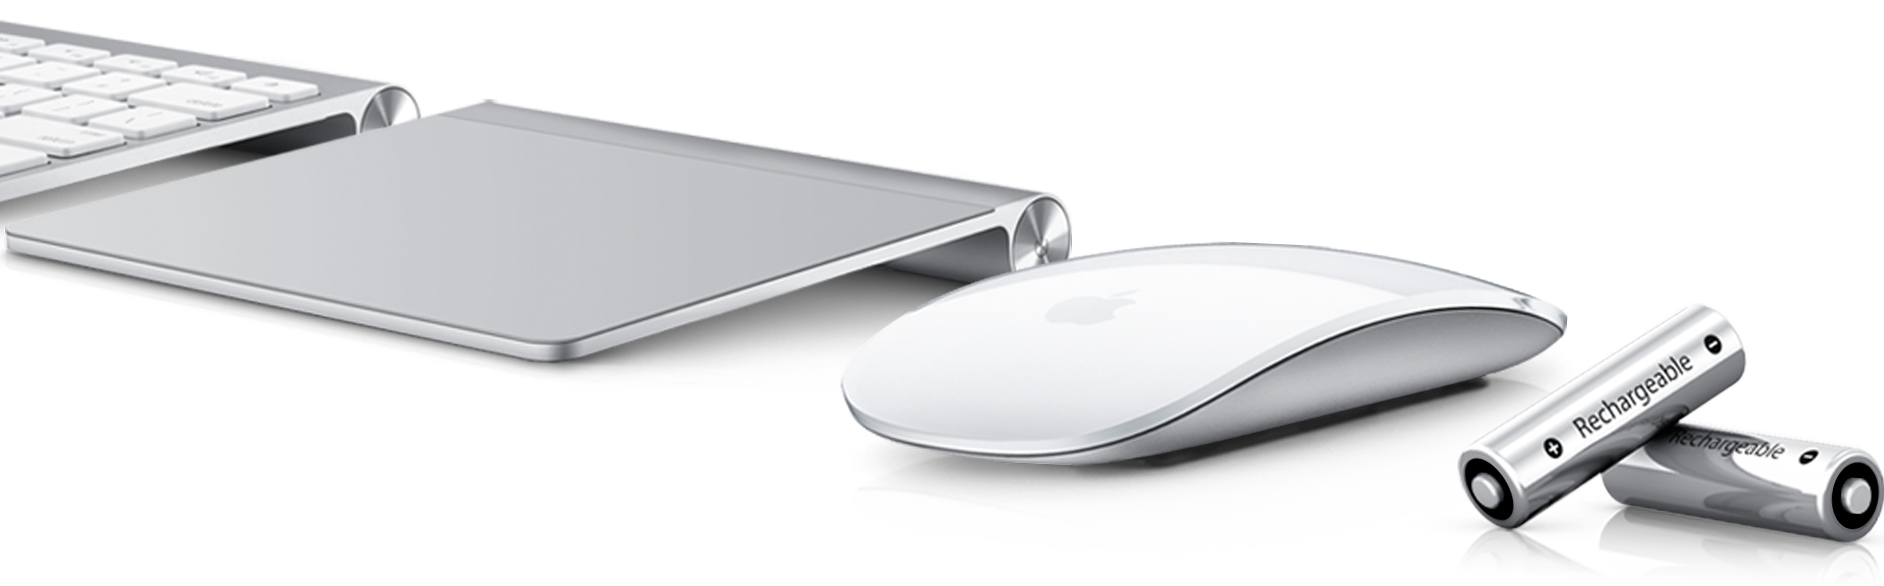 Apple Wireless Keyboard, Magic Trackpad, Magic Mouse, Apple Battery Charger